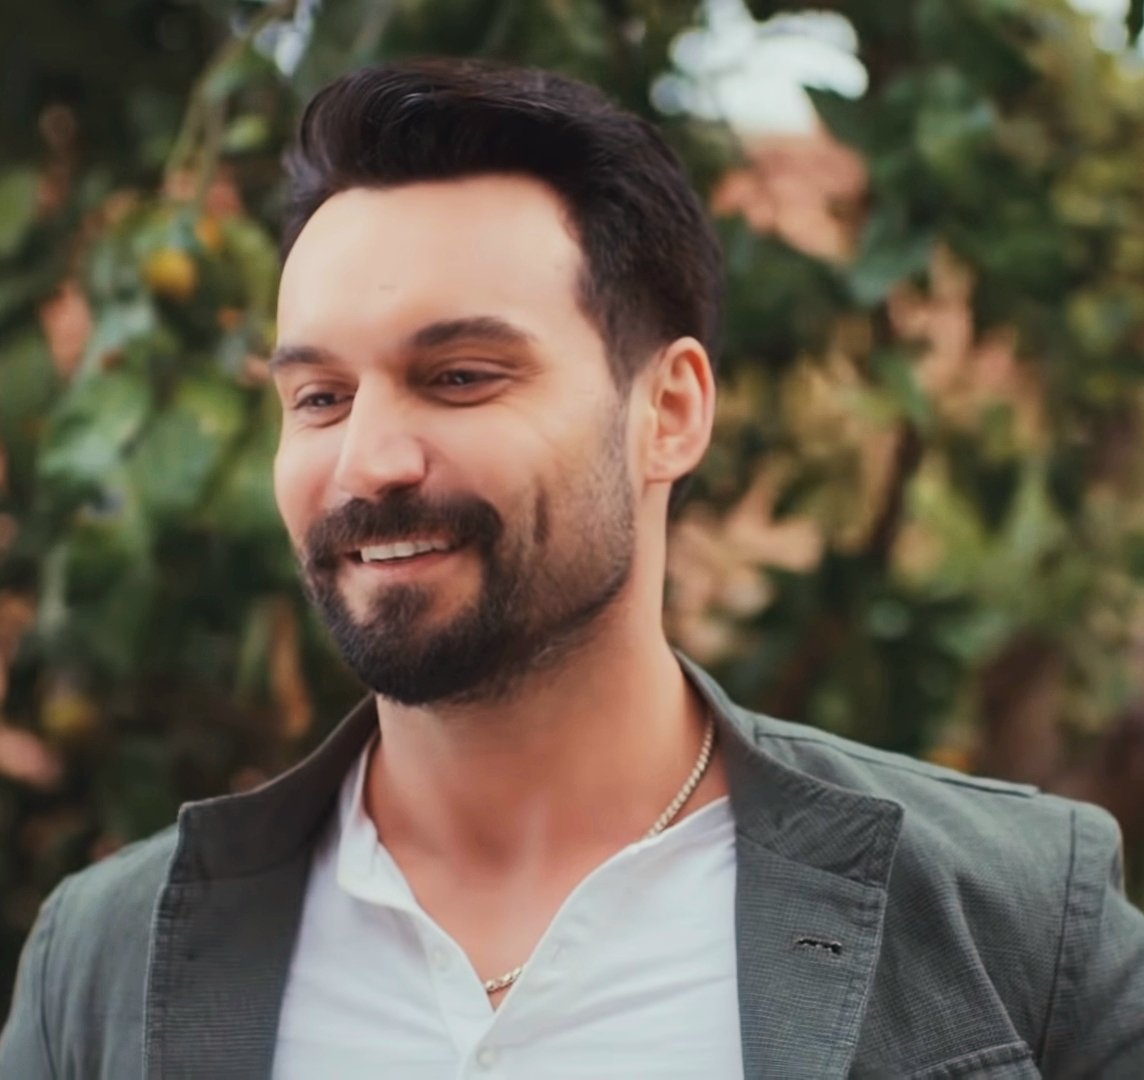 Love 😍  #AliErsanDuru || #Handsome #SenÇalKapımı #EfeAkman https://t.co/rxnzMUvXjj